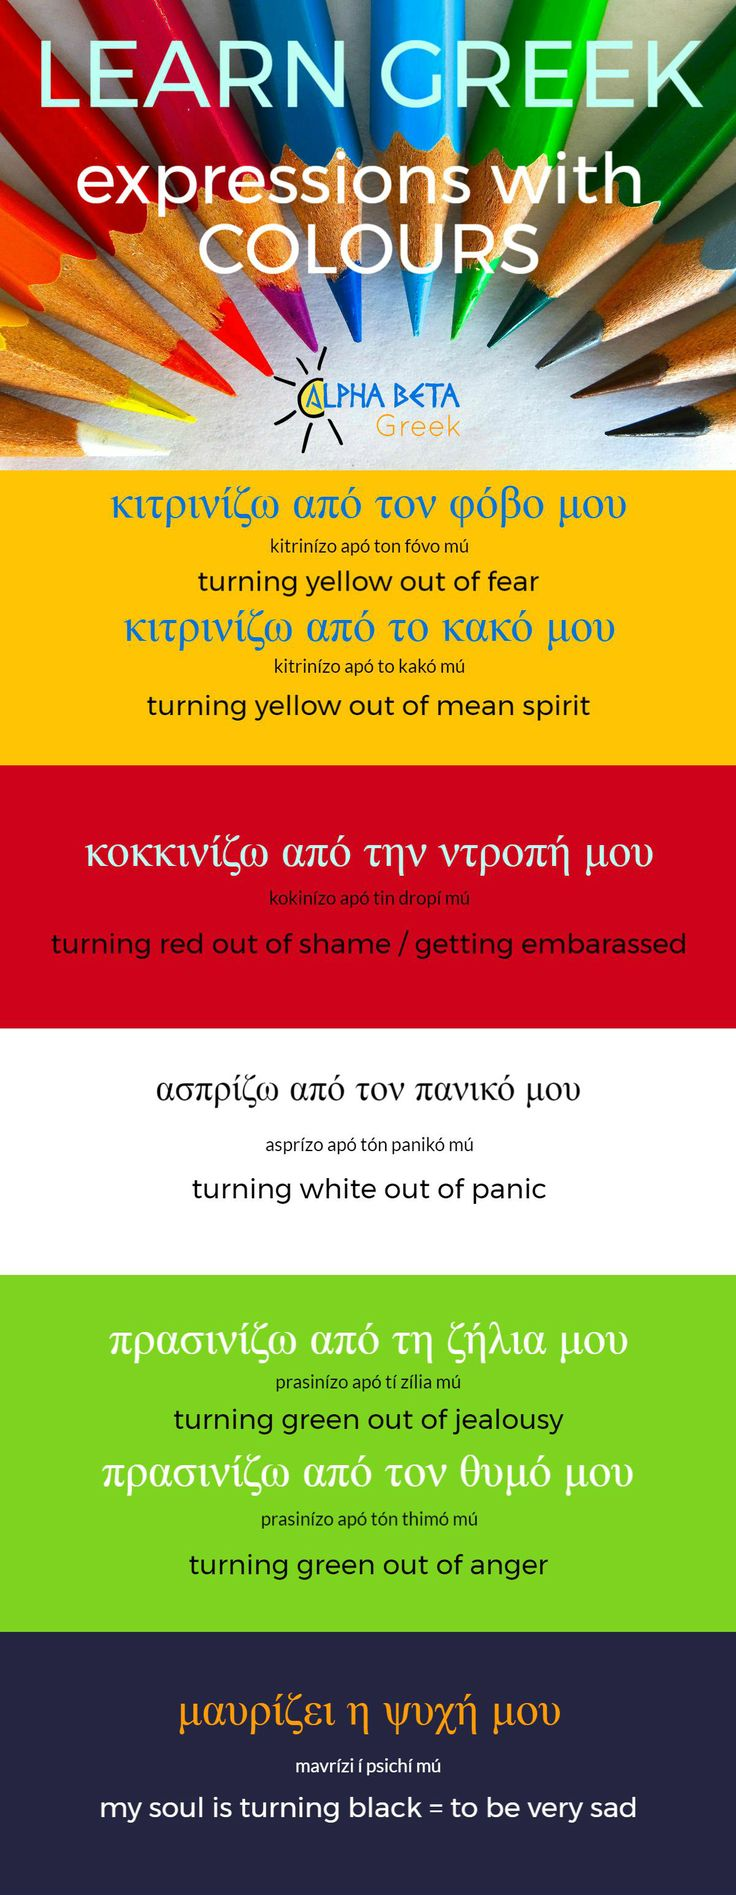 Greek expressions with colours, talking about emotions.